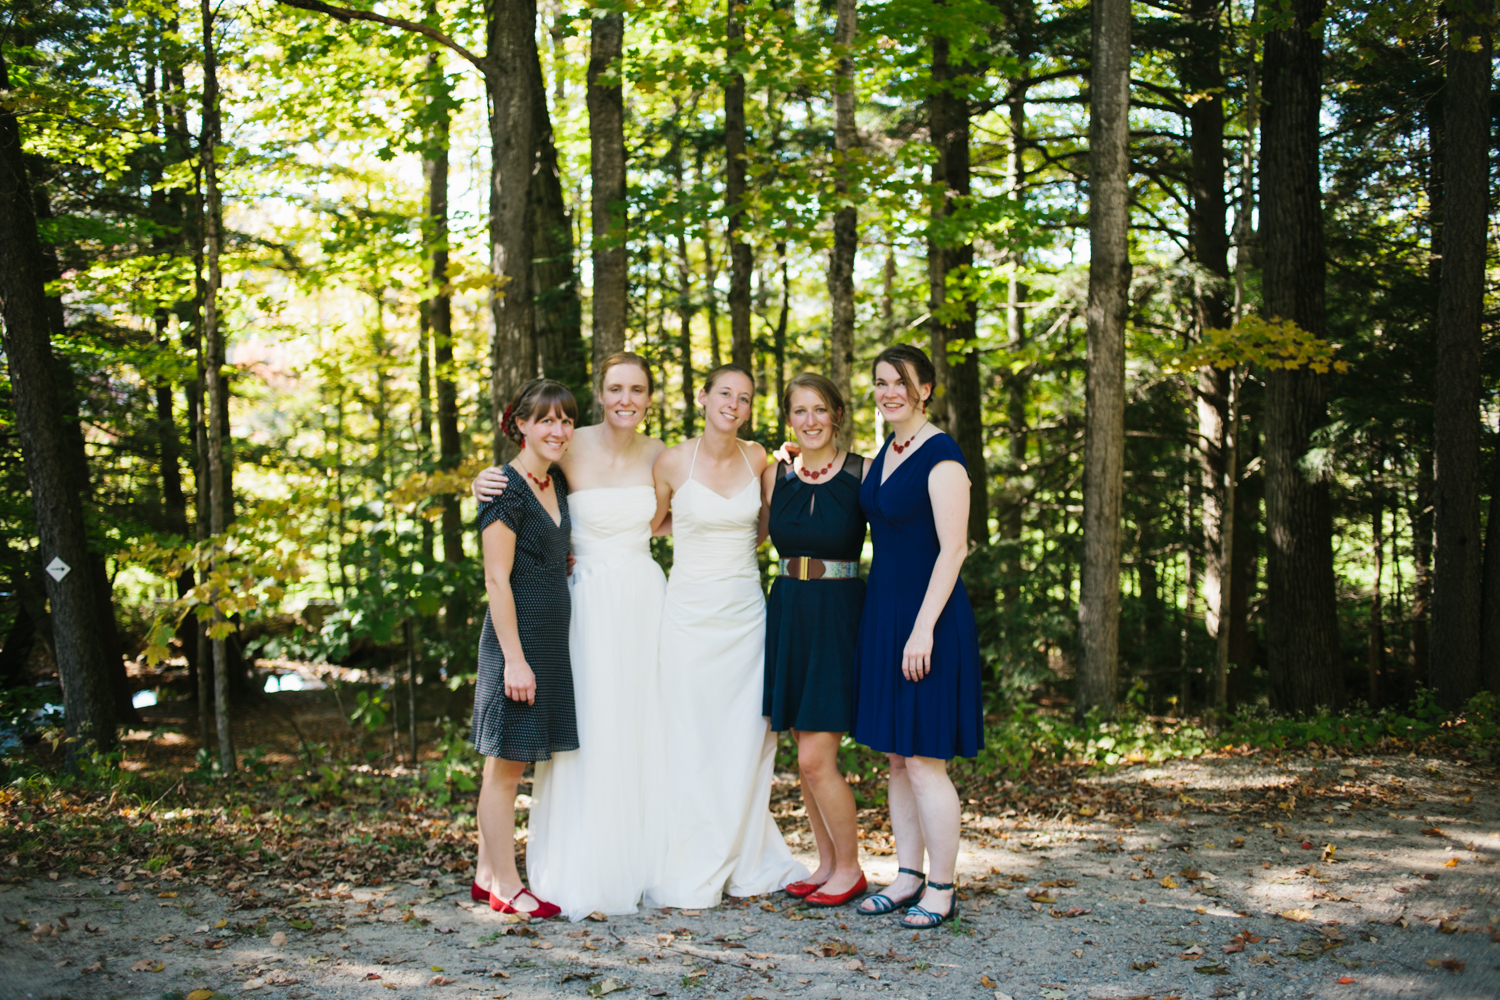 The small but lovely bridal party.